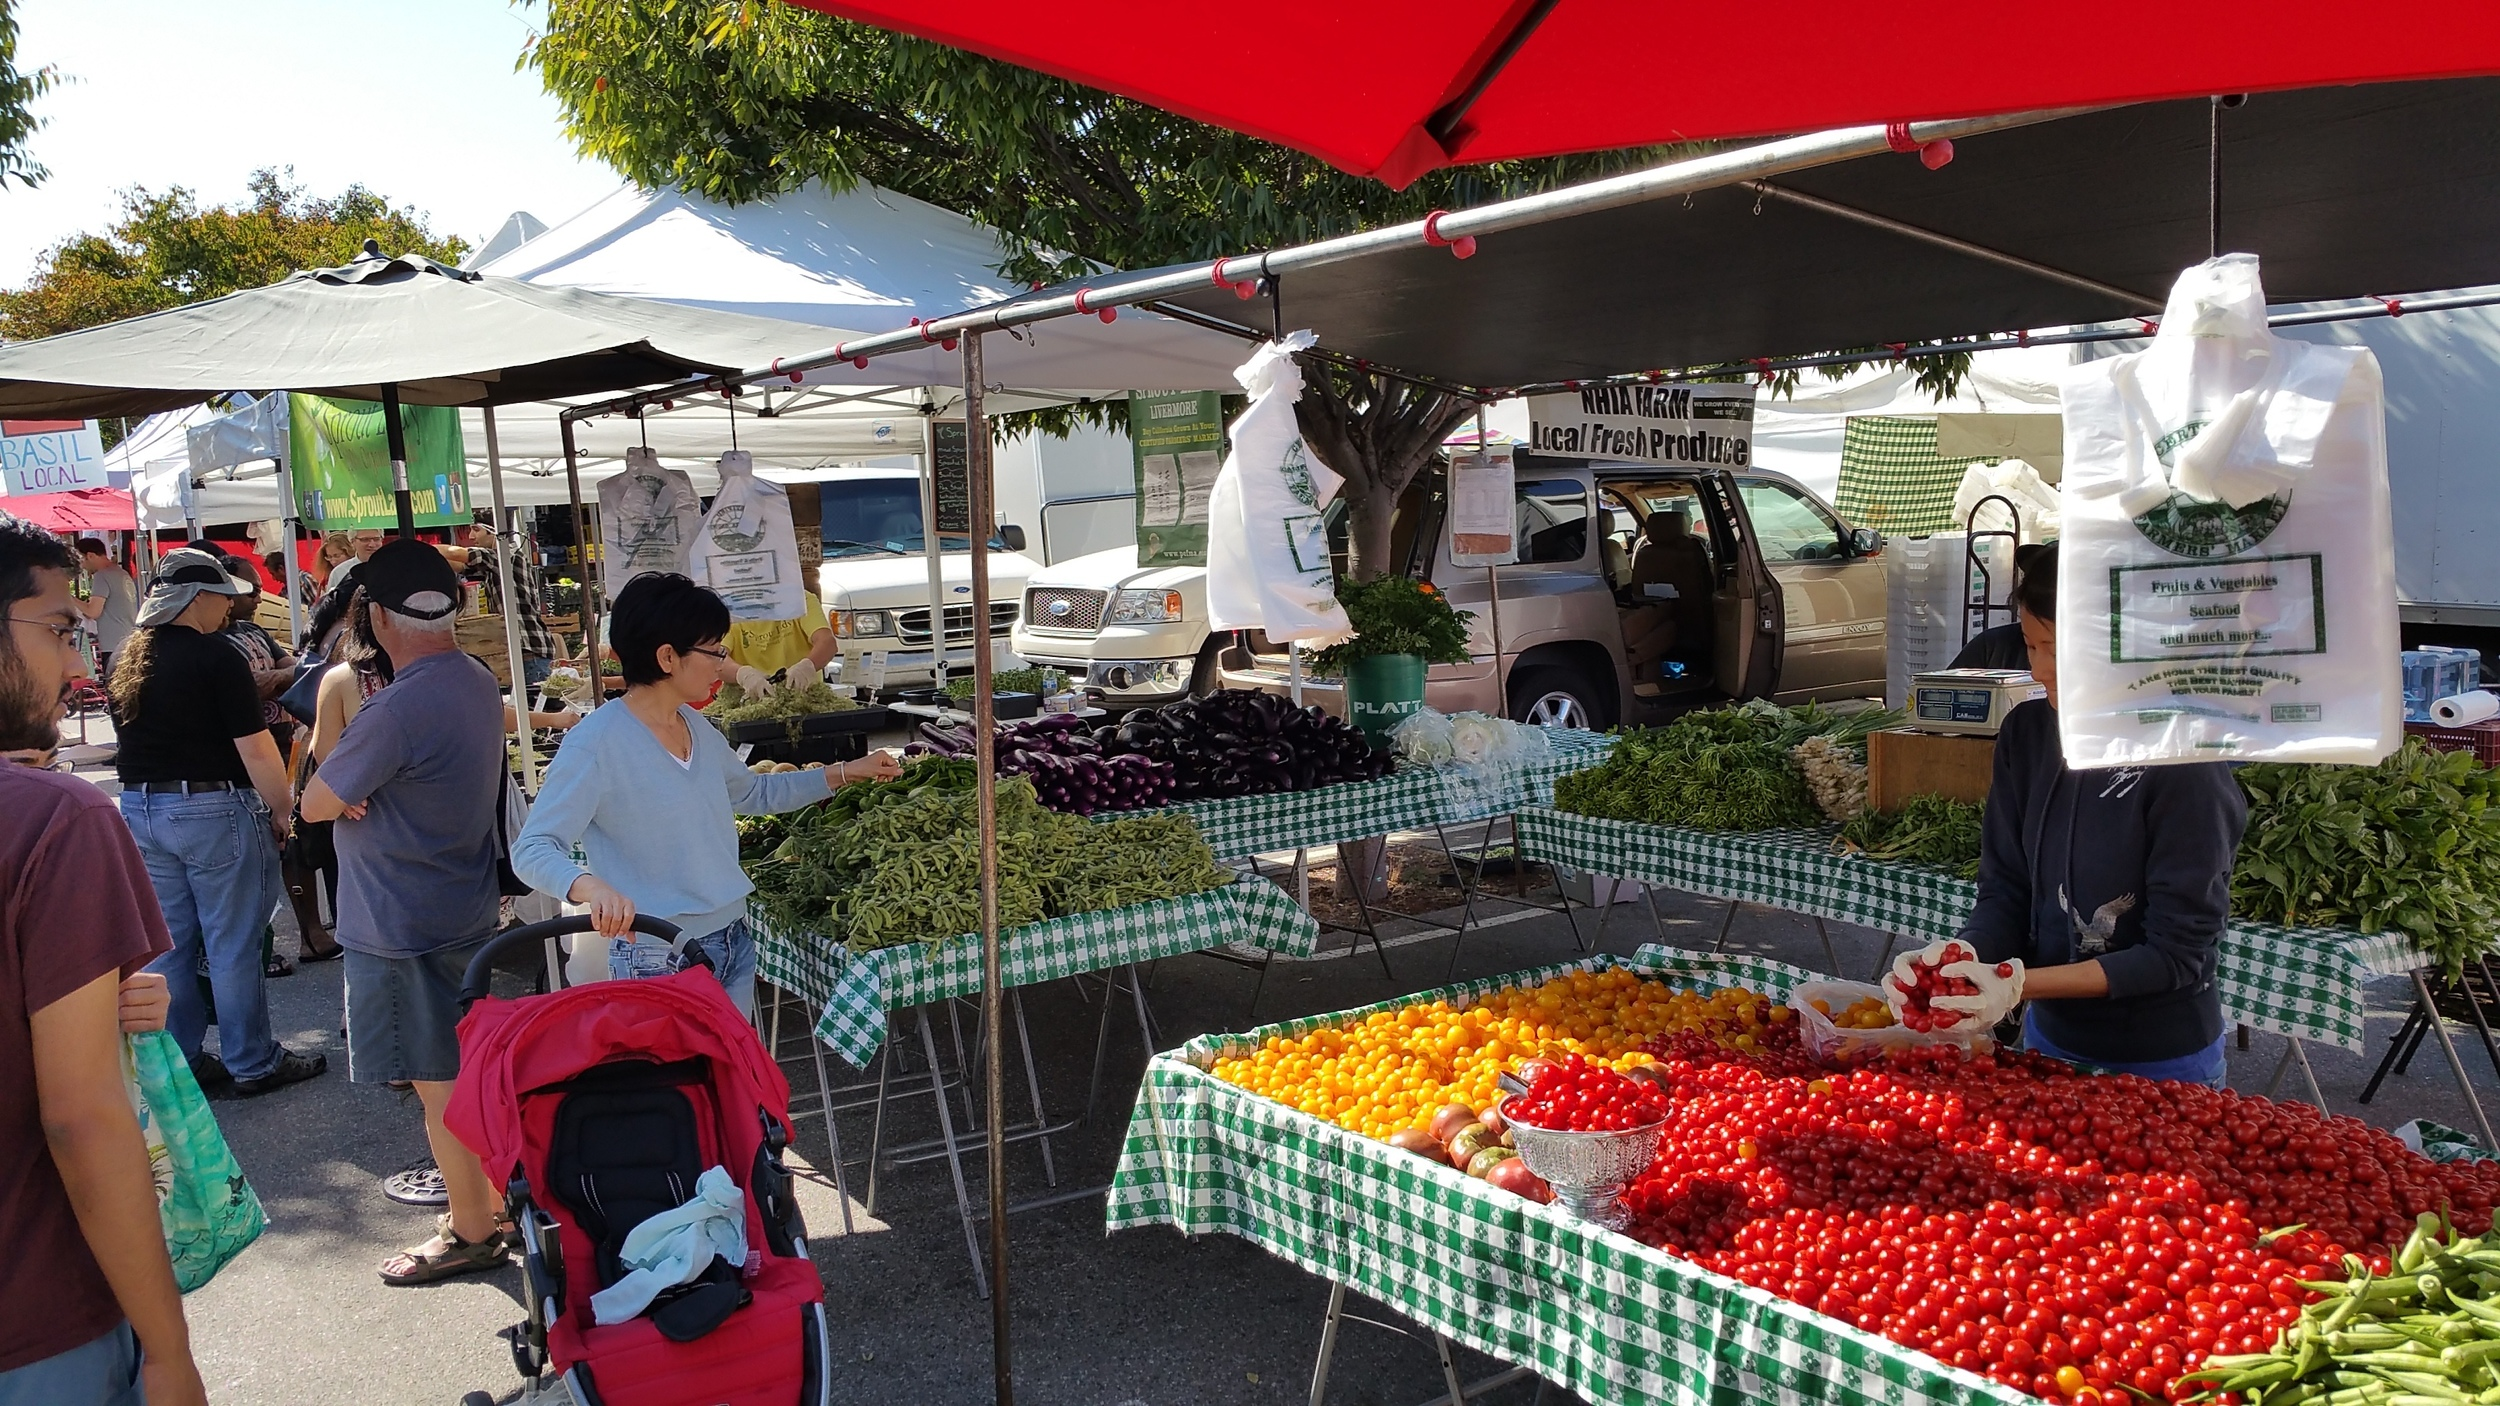 The Mountain View Farmer's Market. On Super Bowl Sunday, it will be open from 9 until noon at California and Bryant streets.